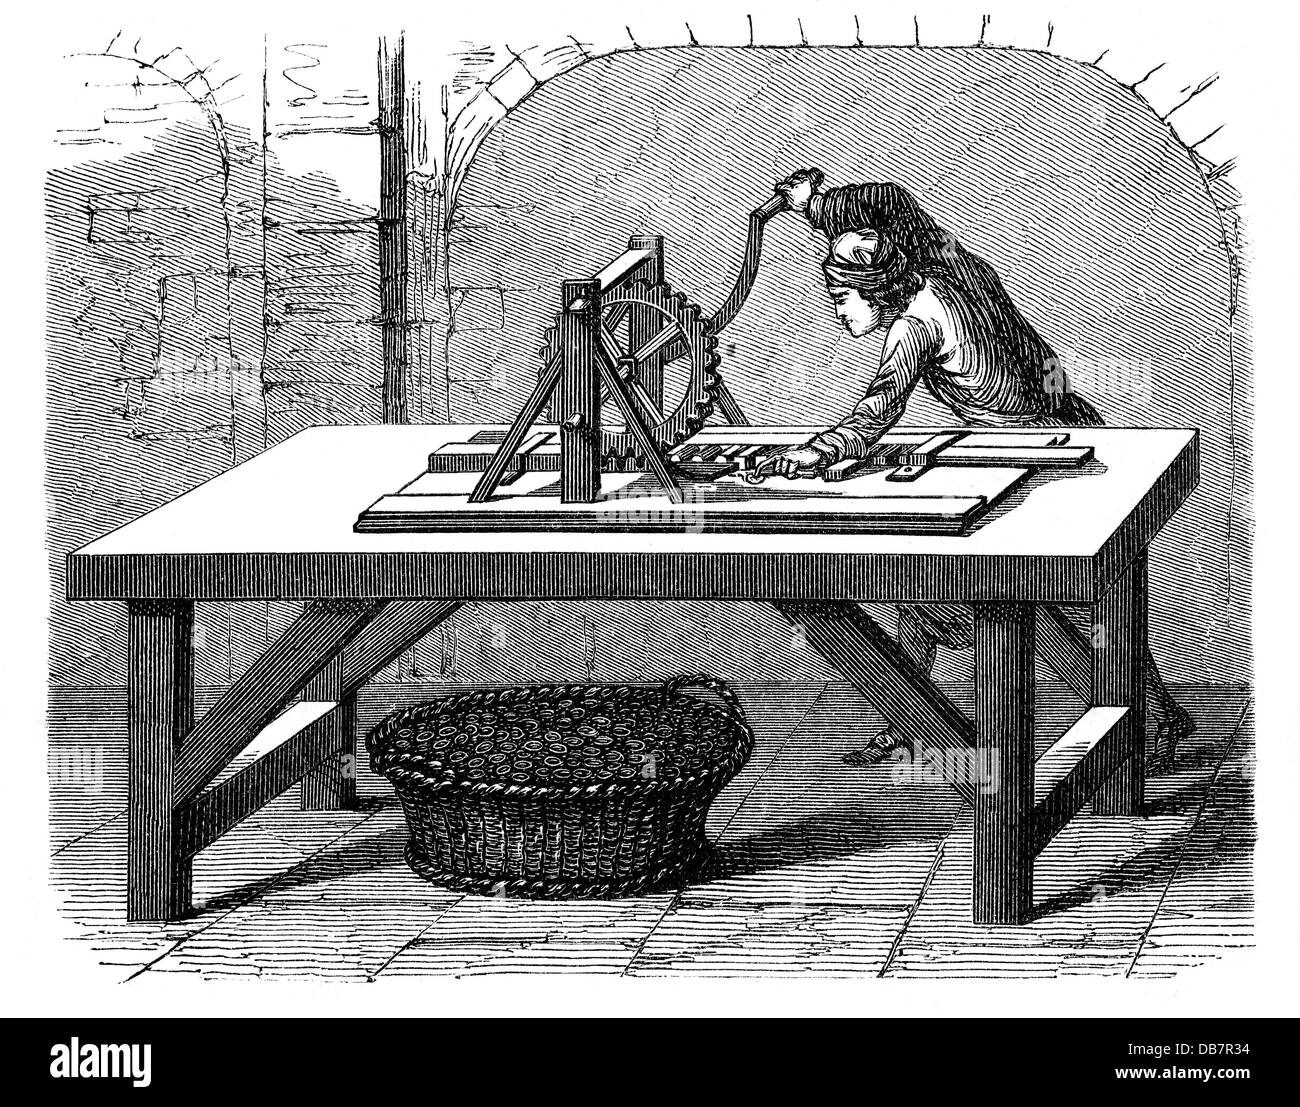 money / finances, mintage, old knurling machine, from: book of inventions, trades and industries, Otto Spamer publishing - Stock Image